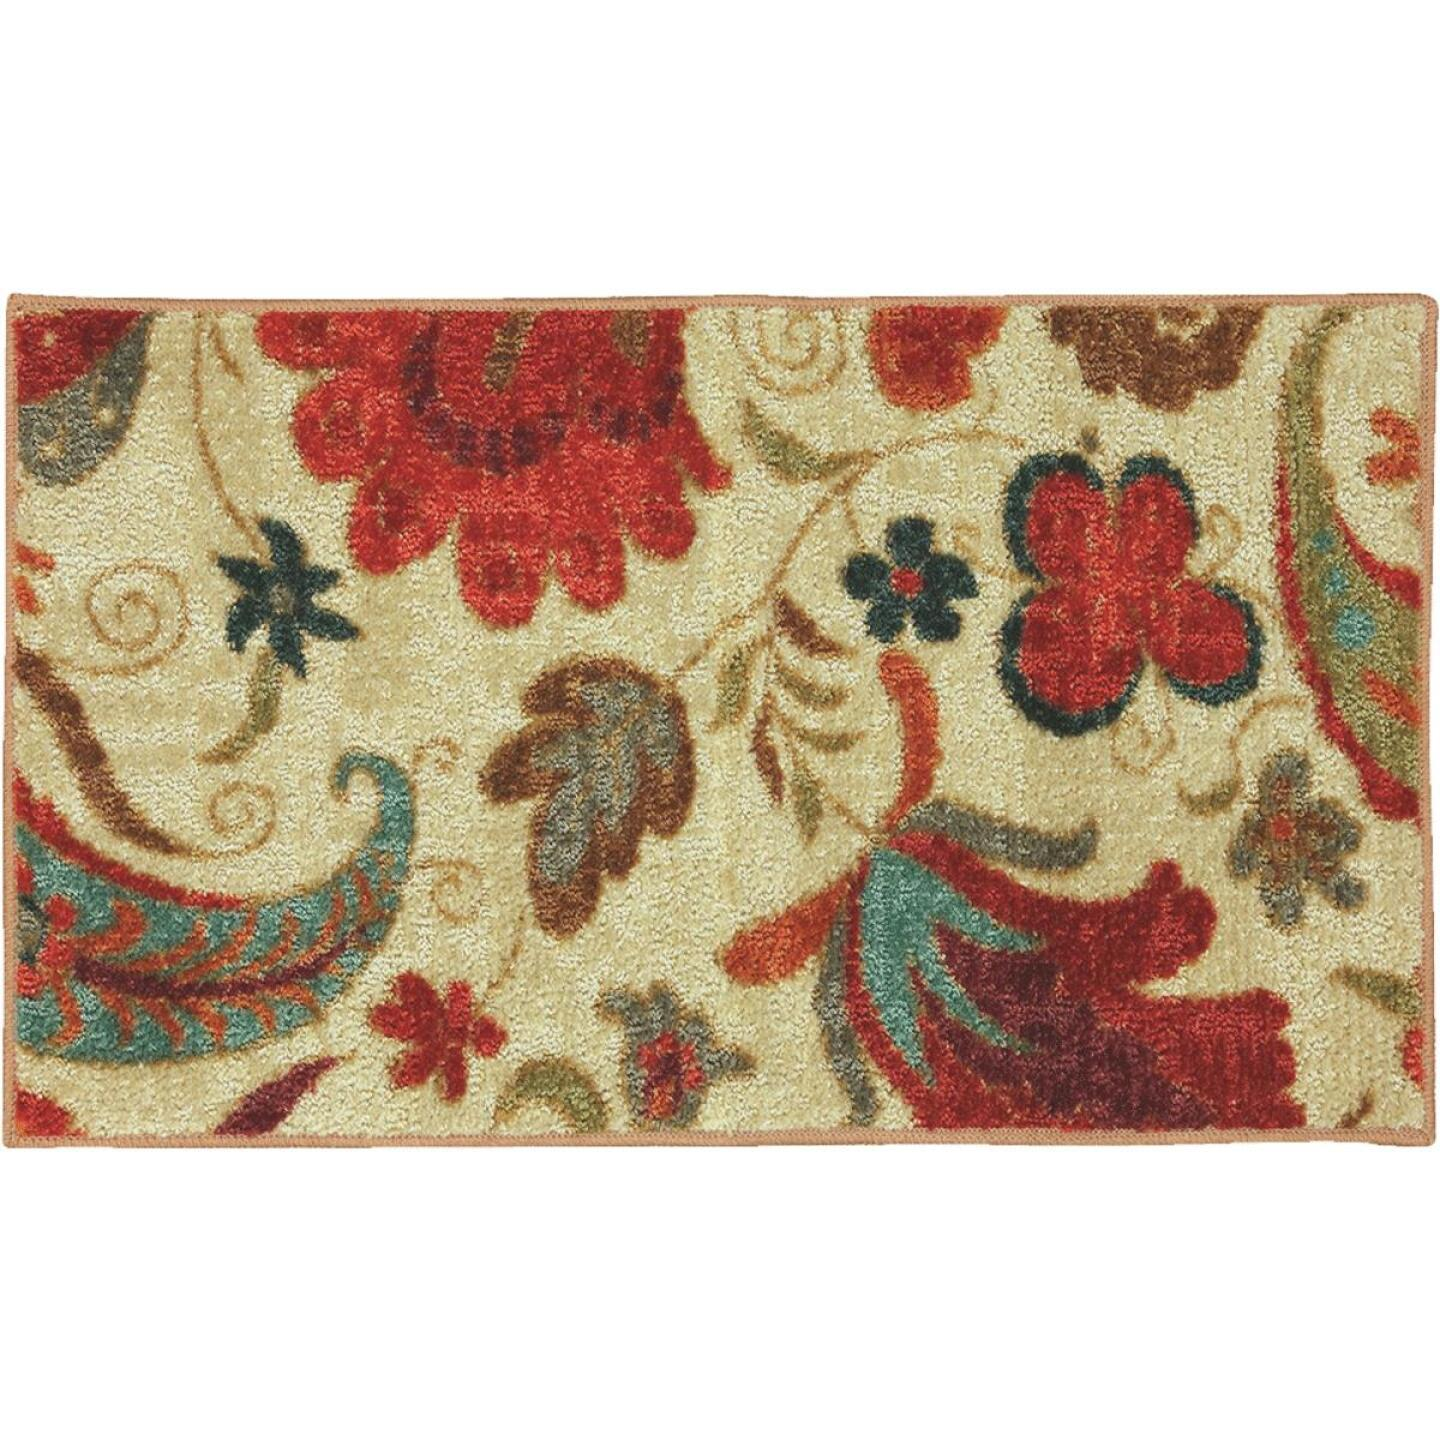 Mohawk Home Tropical Acres 1 Ft. 8 In. x 2 Ft. 10 In. Accent Rug Image 1